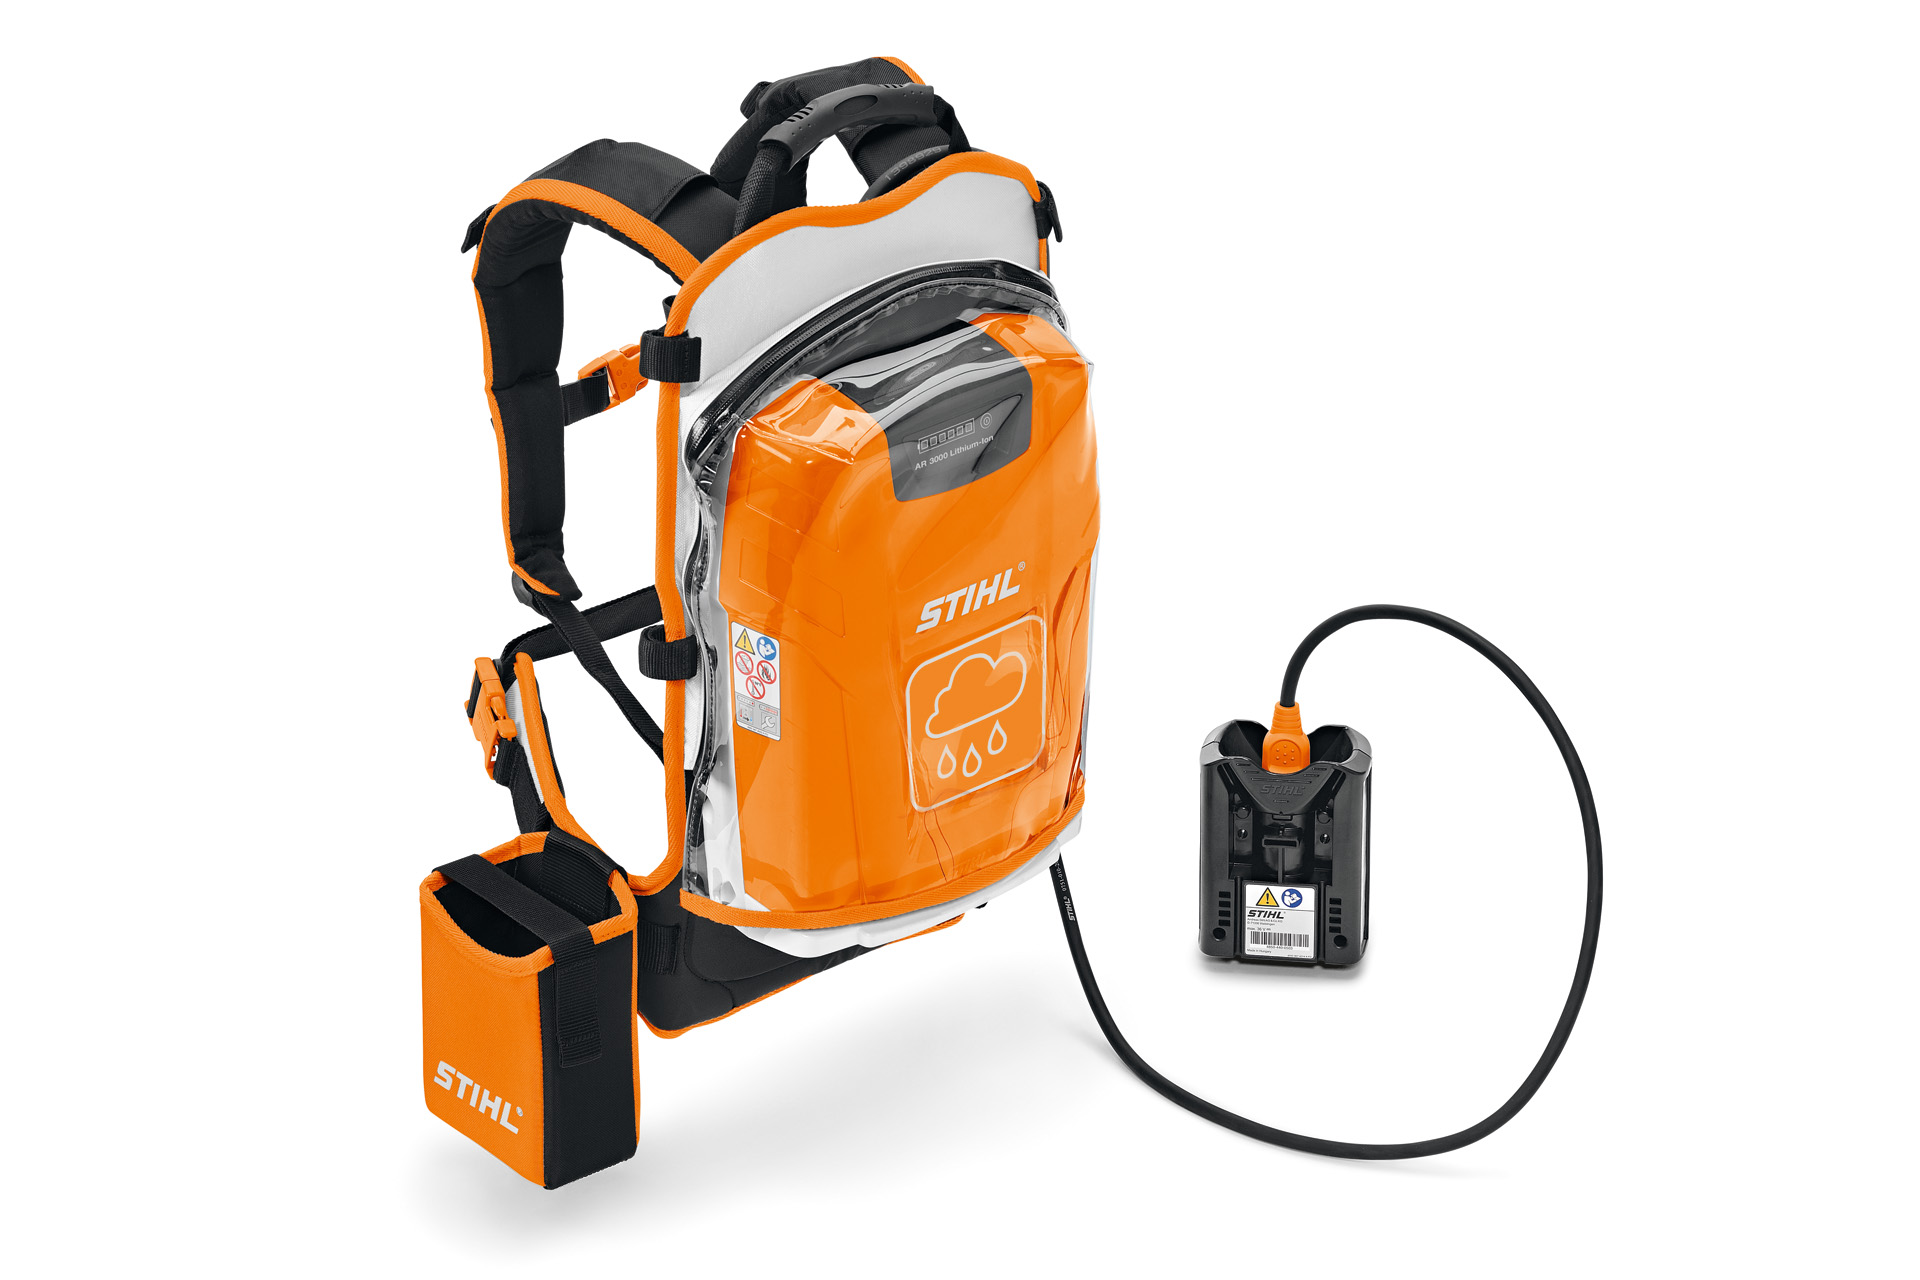 AR 3000 - HIGH CAPACITY BACKPACK BATTERY FOR AP SYSTEM TOOLS